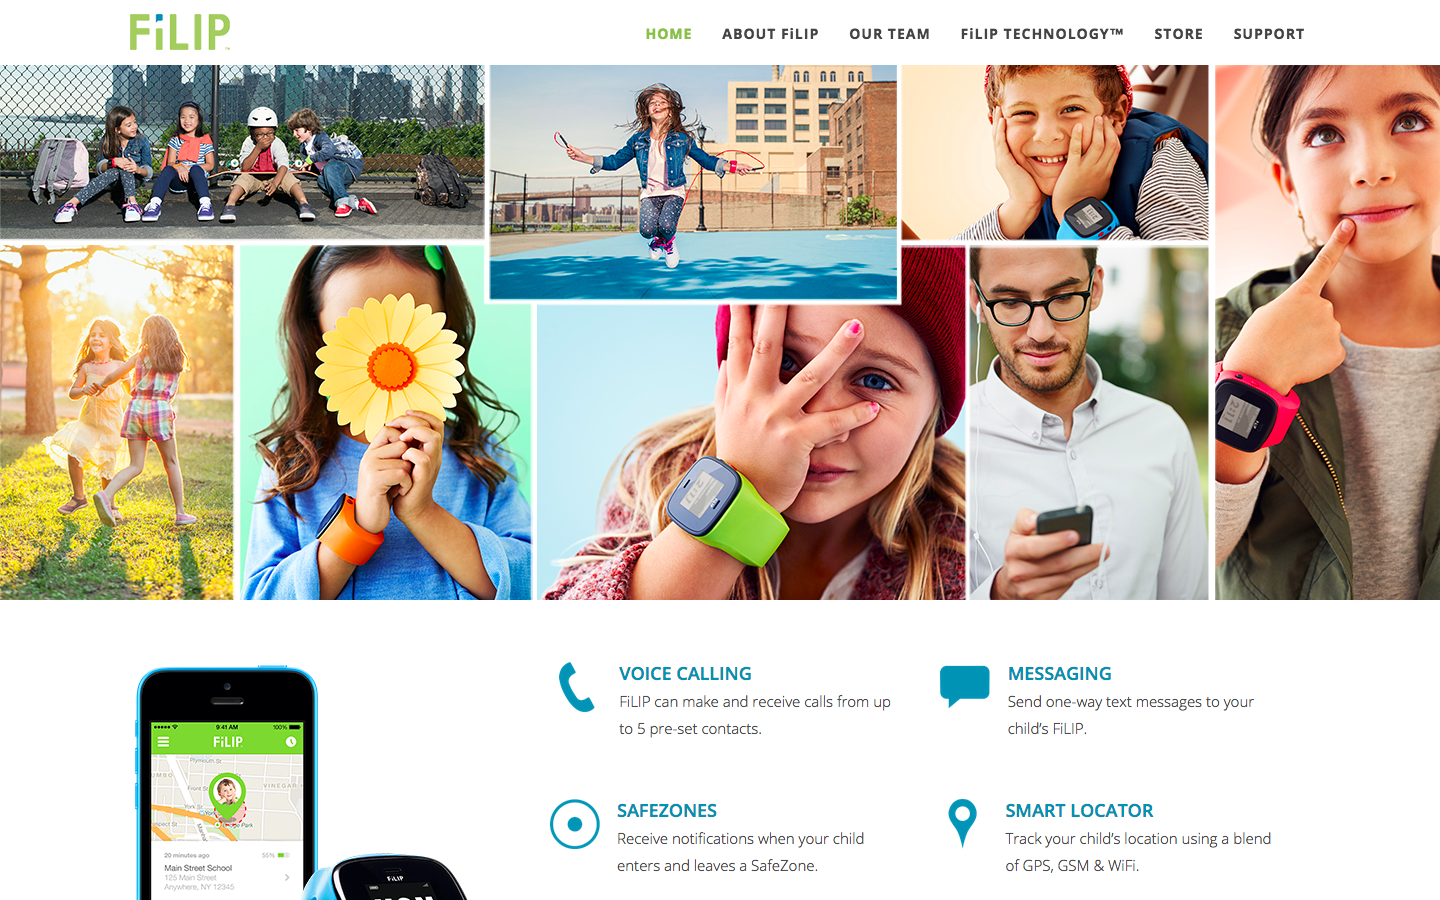 FiLIP - THE WORLD'S FIRST SMART LOCATOR AND PHONE FOR KIDS